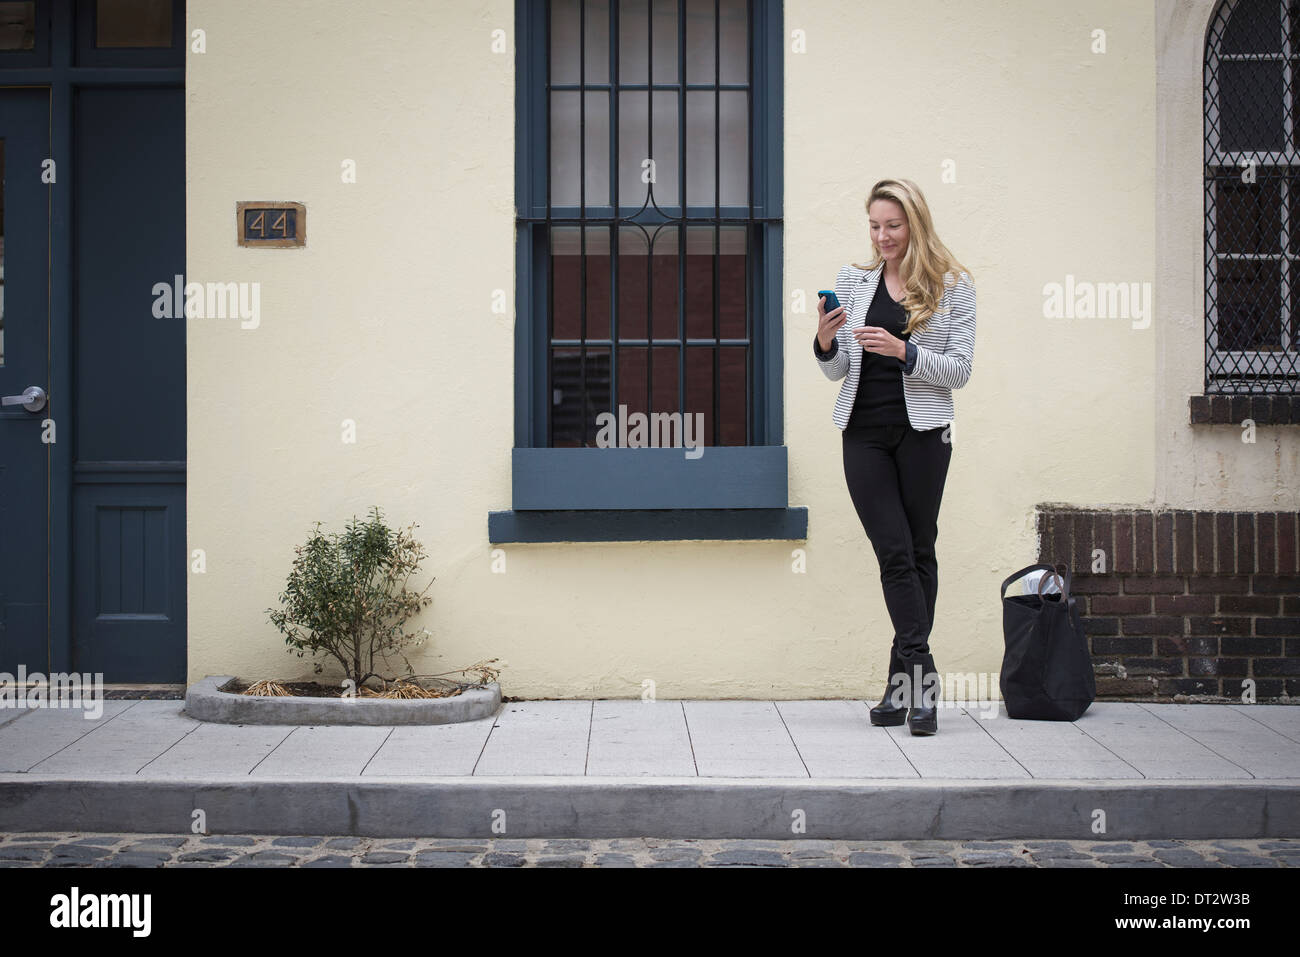 New York city street life Young people in springtime A woman with blonde hair standing on a street sidewalk - Stock Image